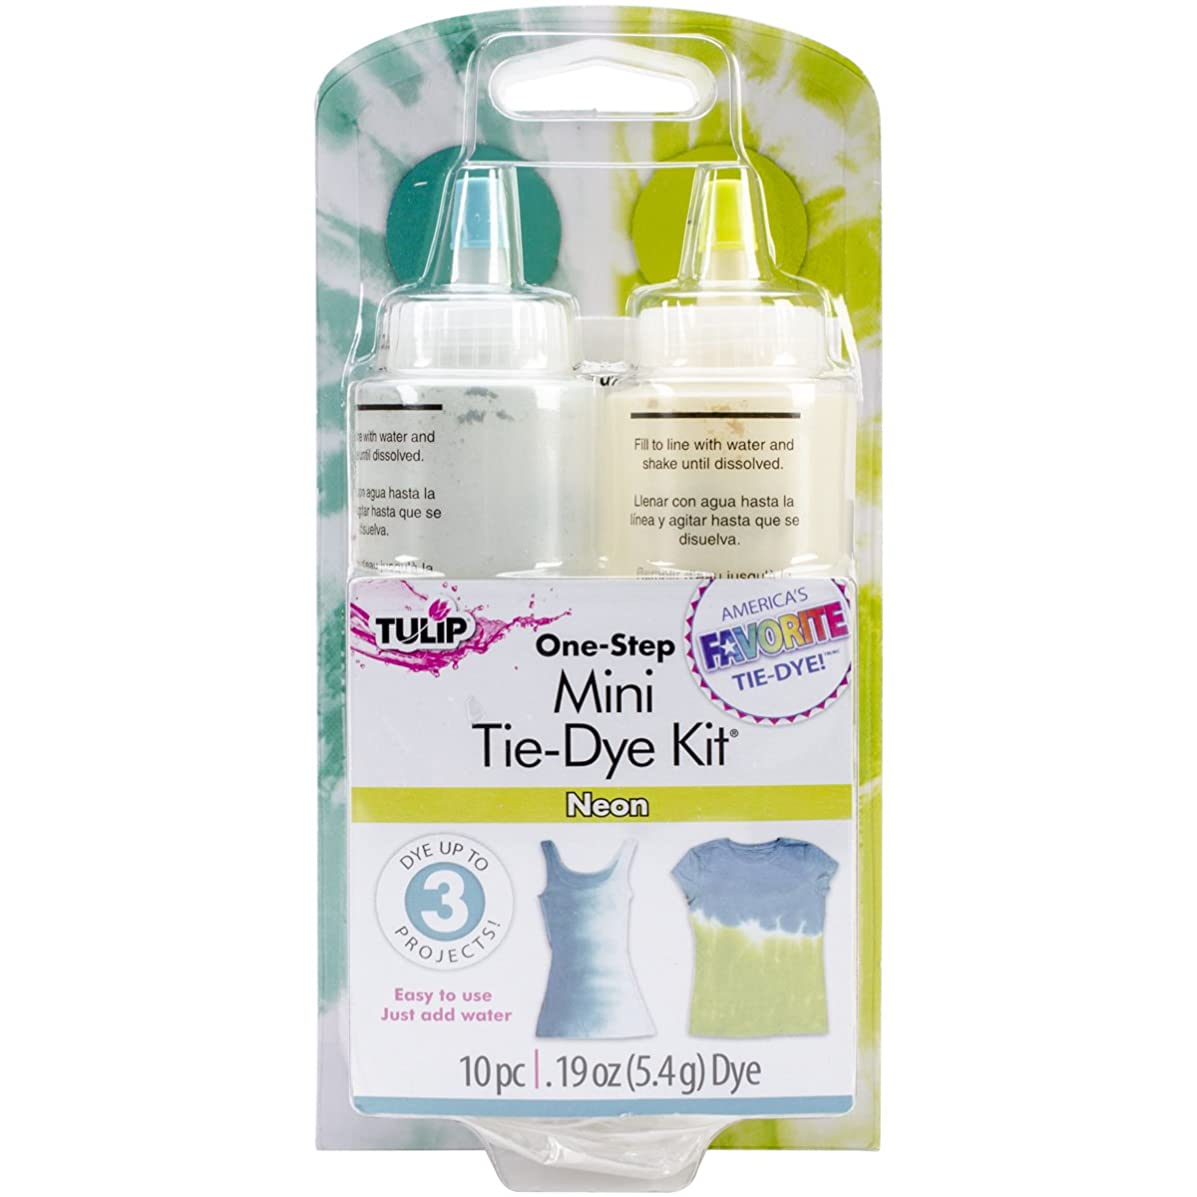 Tulip One-Step Tie Dye Kit, Mini, Neon, 2-Pack